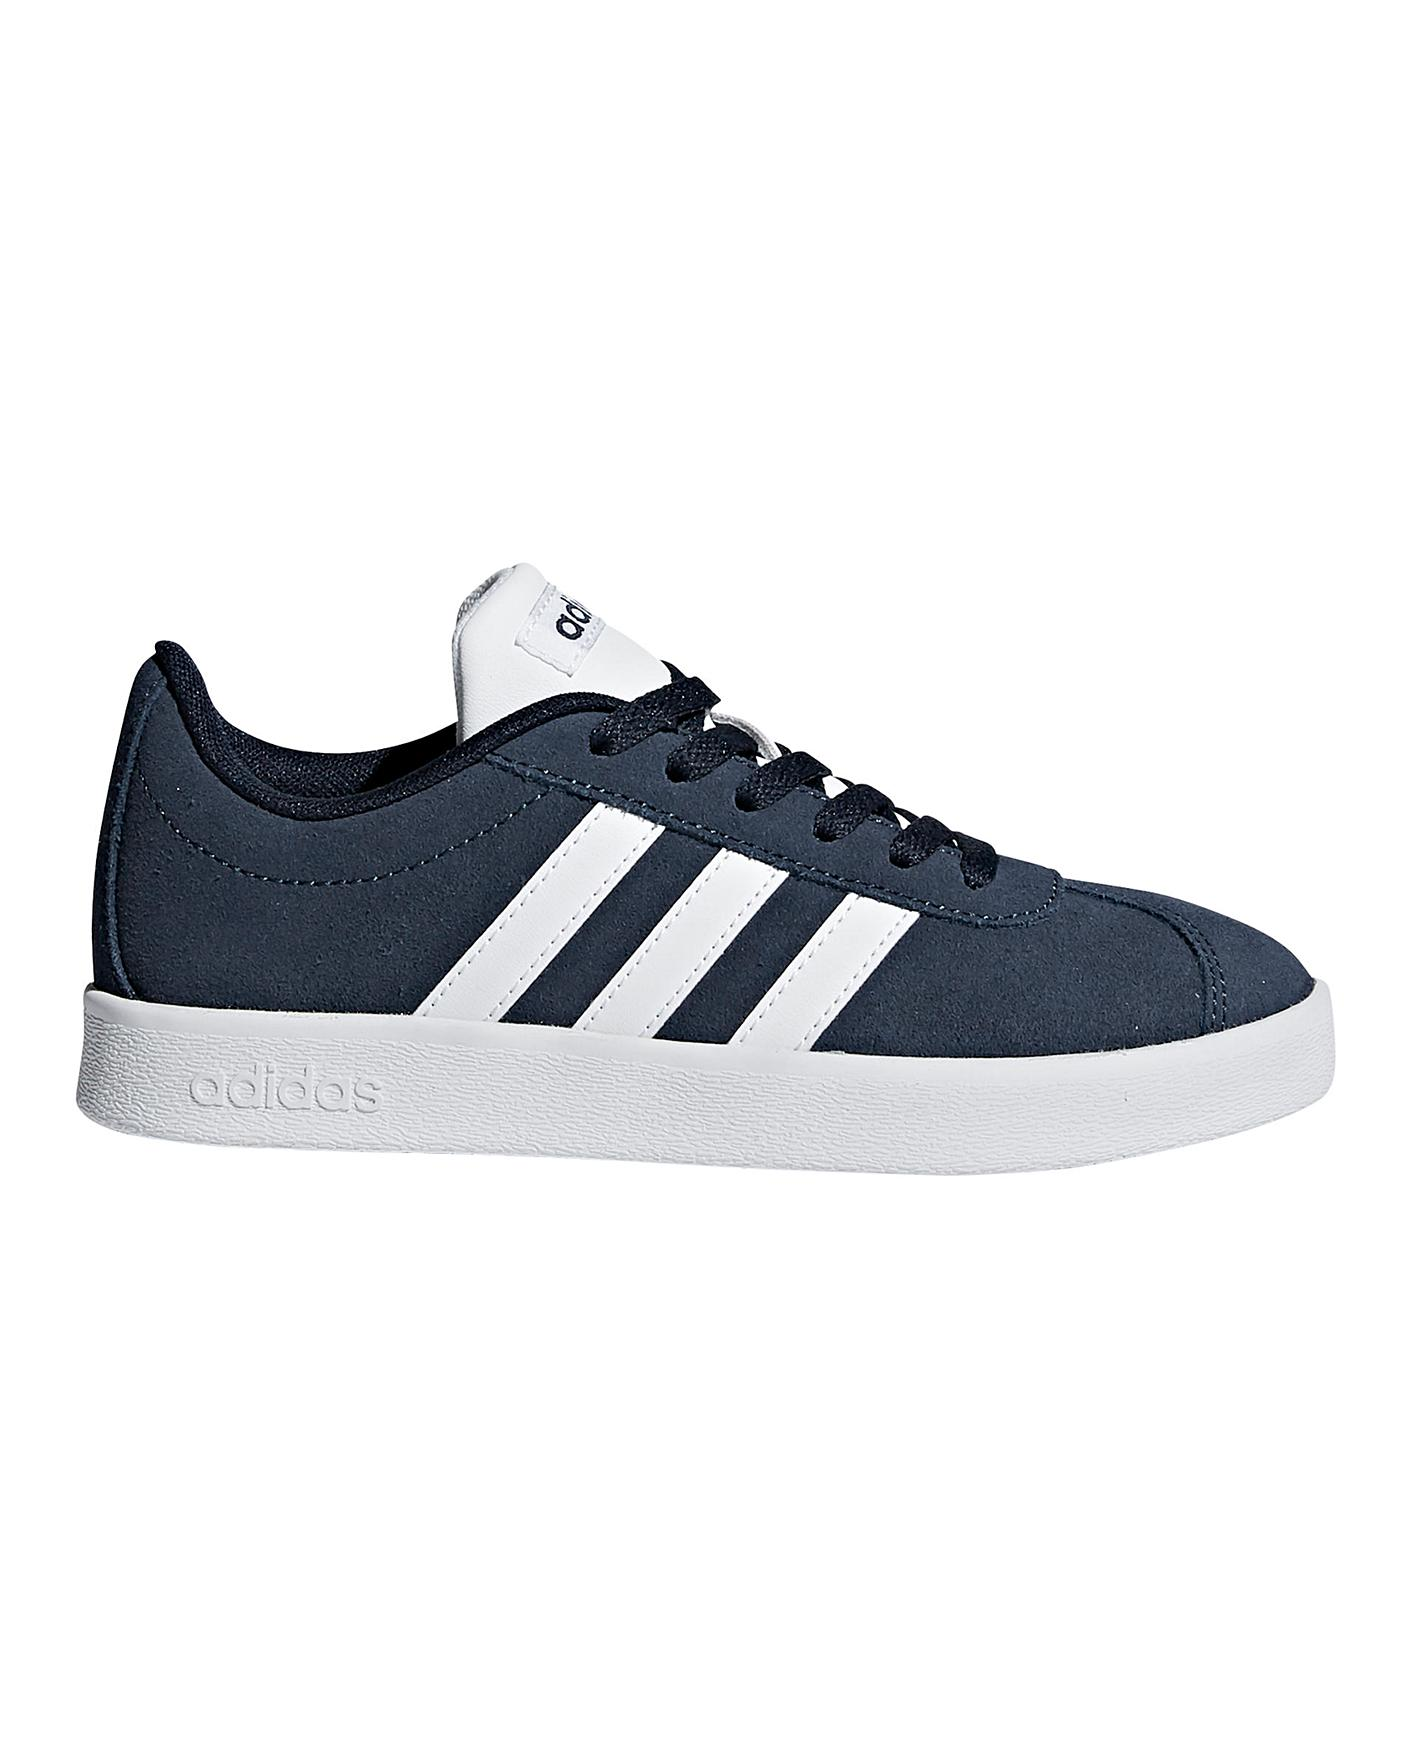 adidas 3 lines shoes off 59% - www